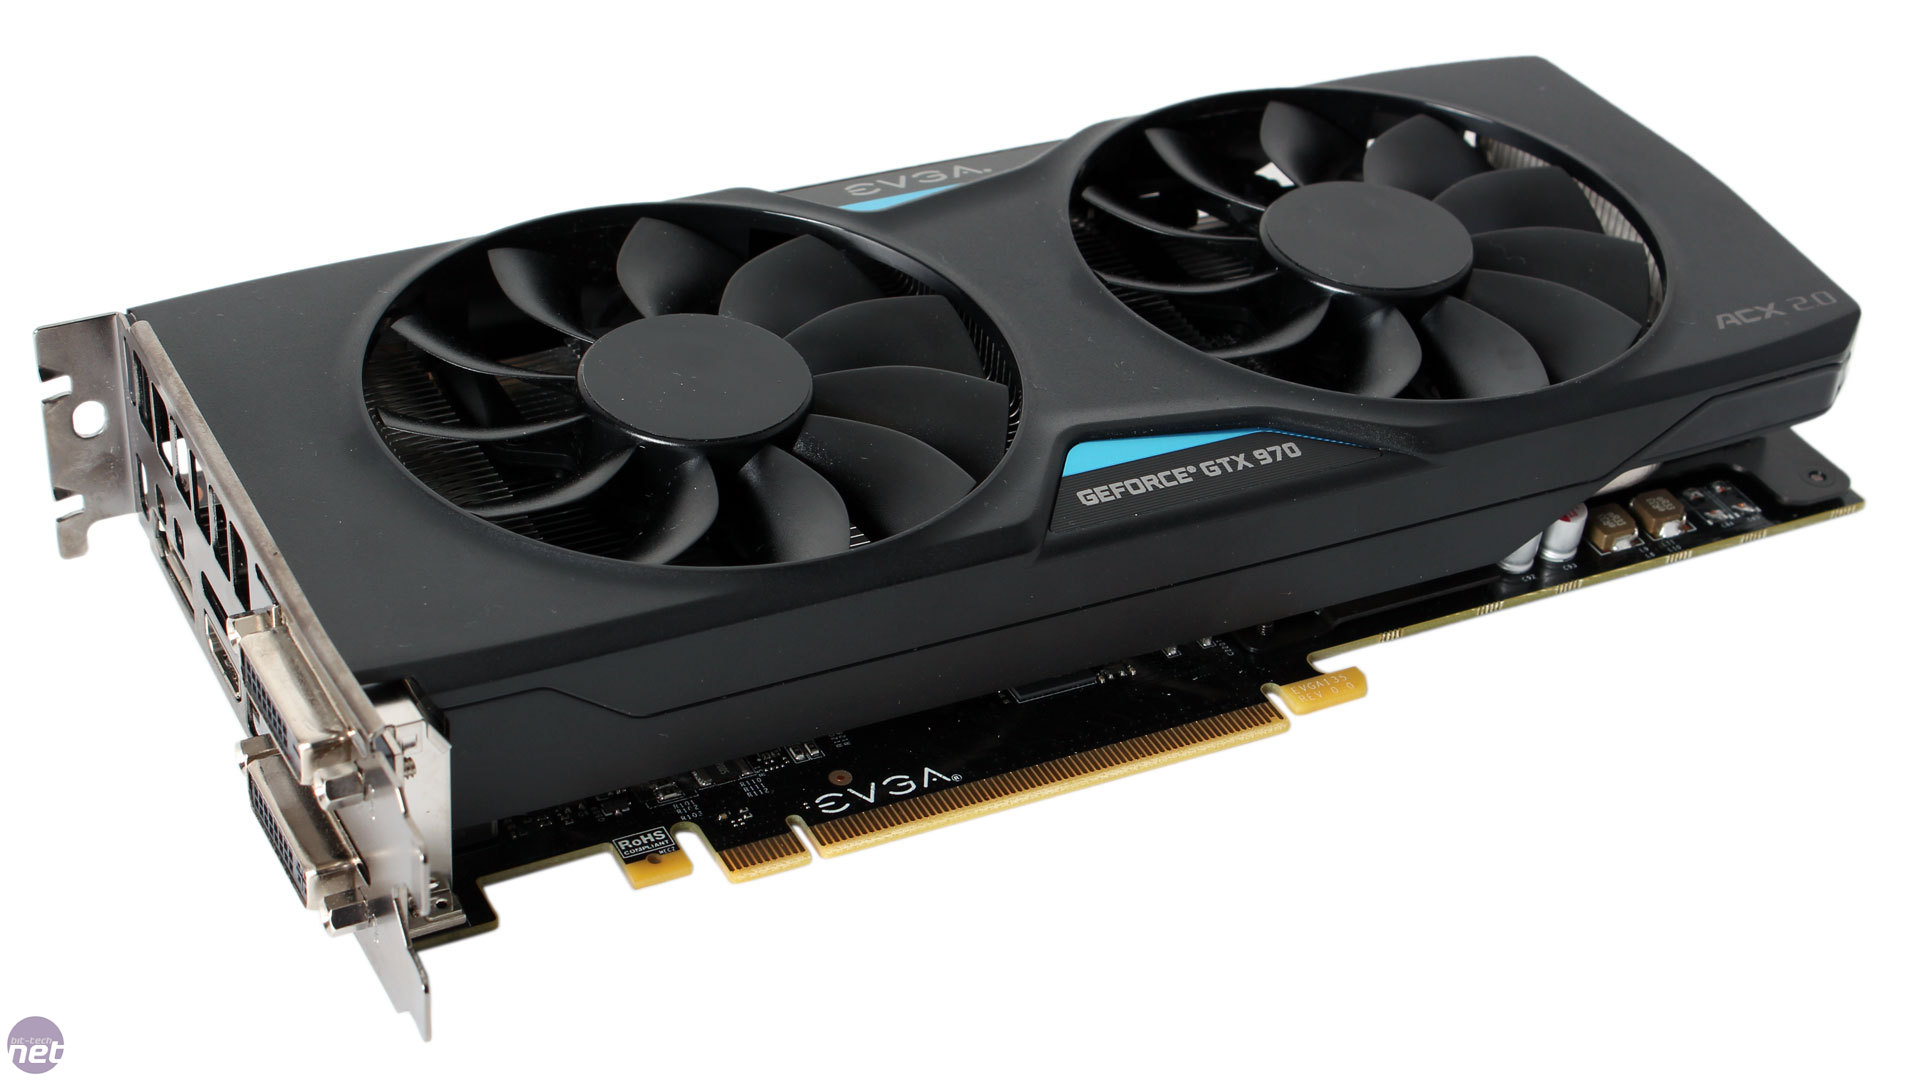 nvidia geforce gtx 970 review roundup feat asus evga and msi